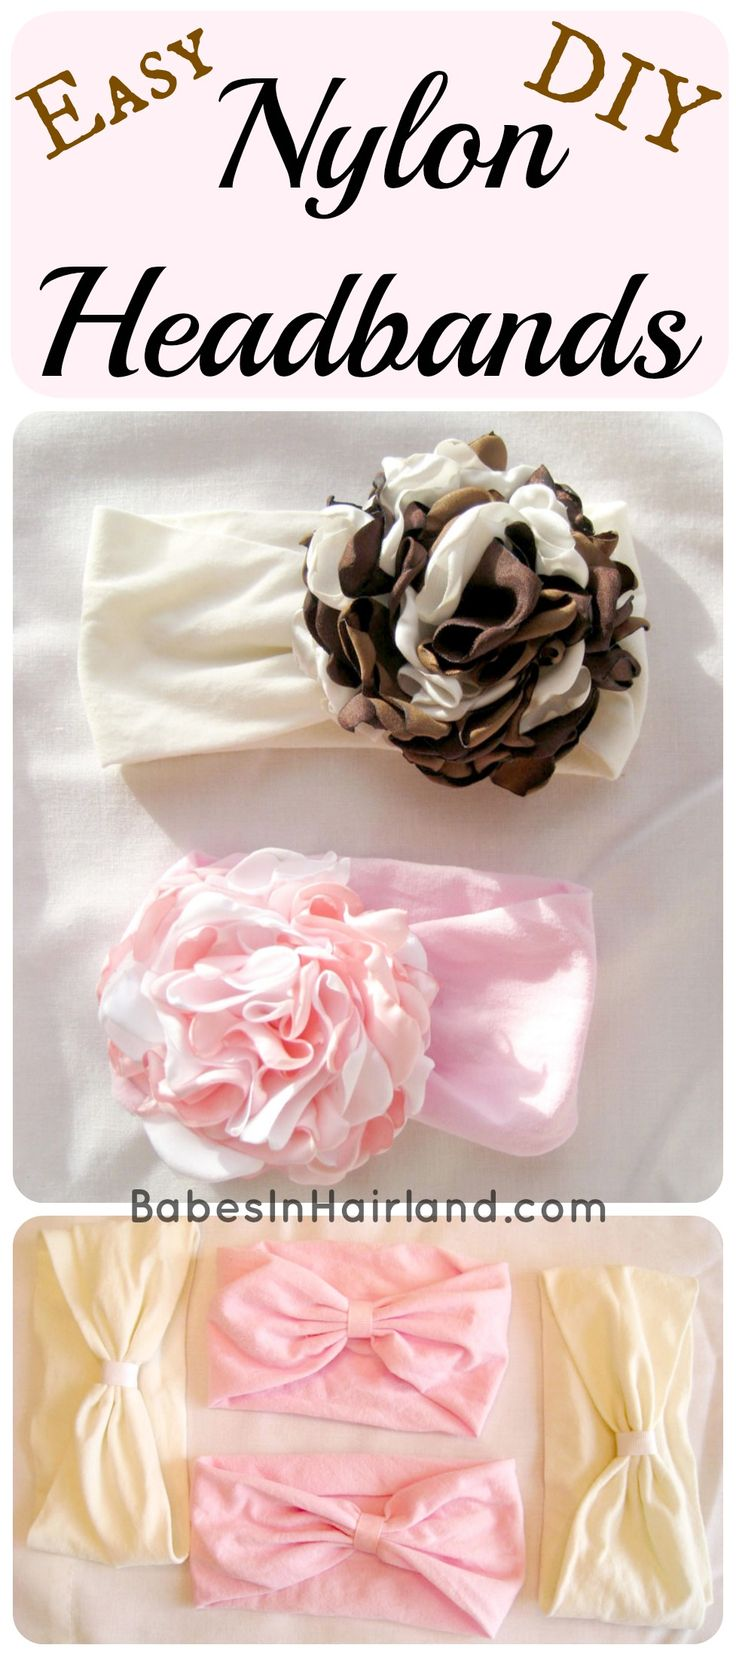 Easy DIY headbands from tights - great way to upcycle tights with holes or tights baby girl grows out of!